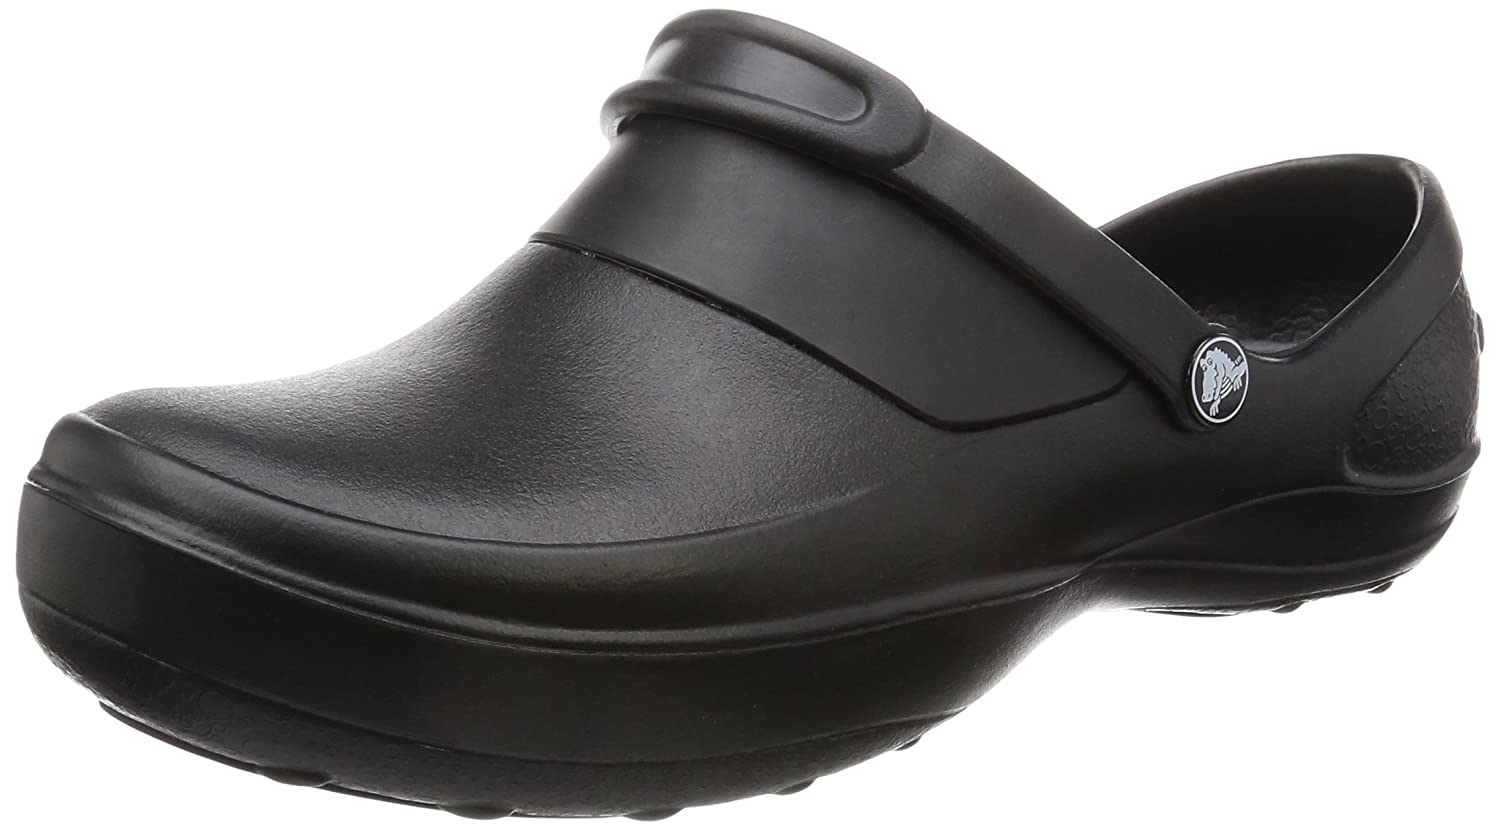 Crocs Women's Mercy Work Slip Resistant Clog Great Nursing or Chef Shoe